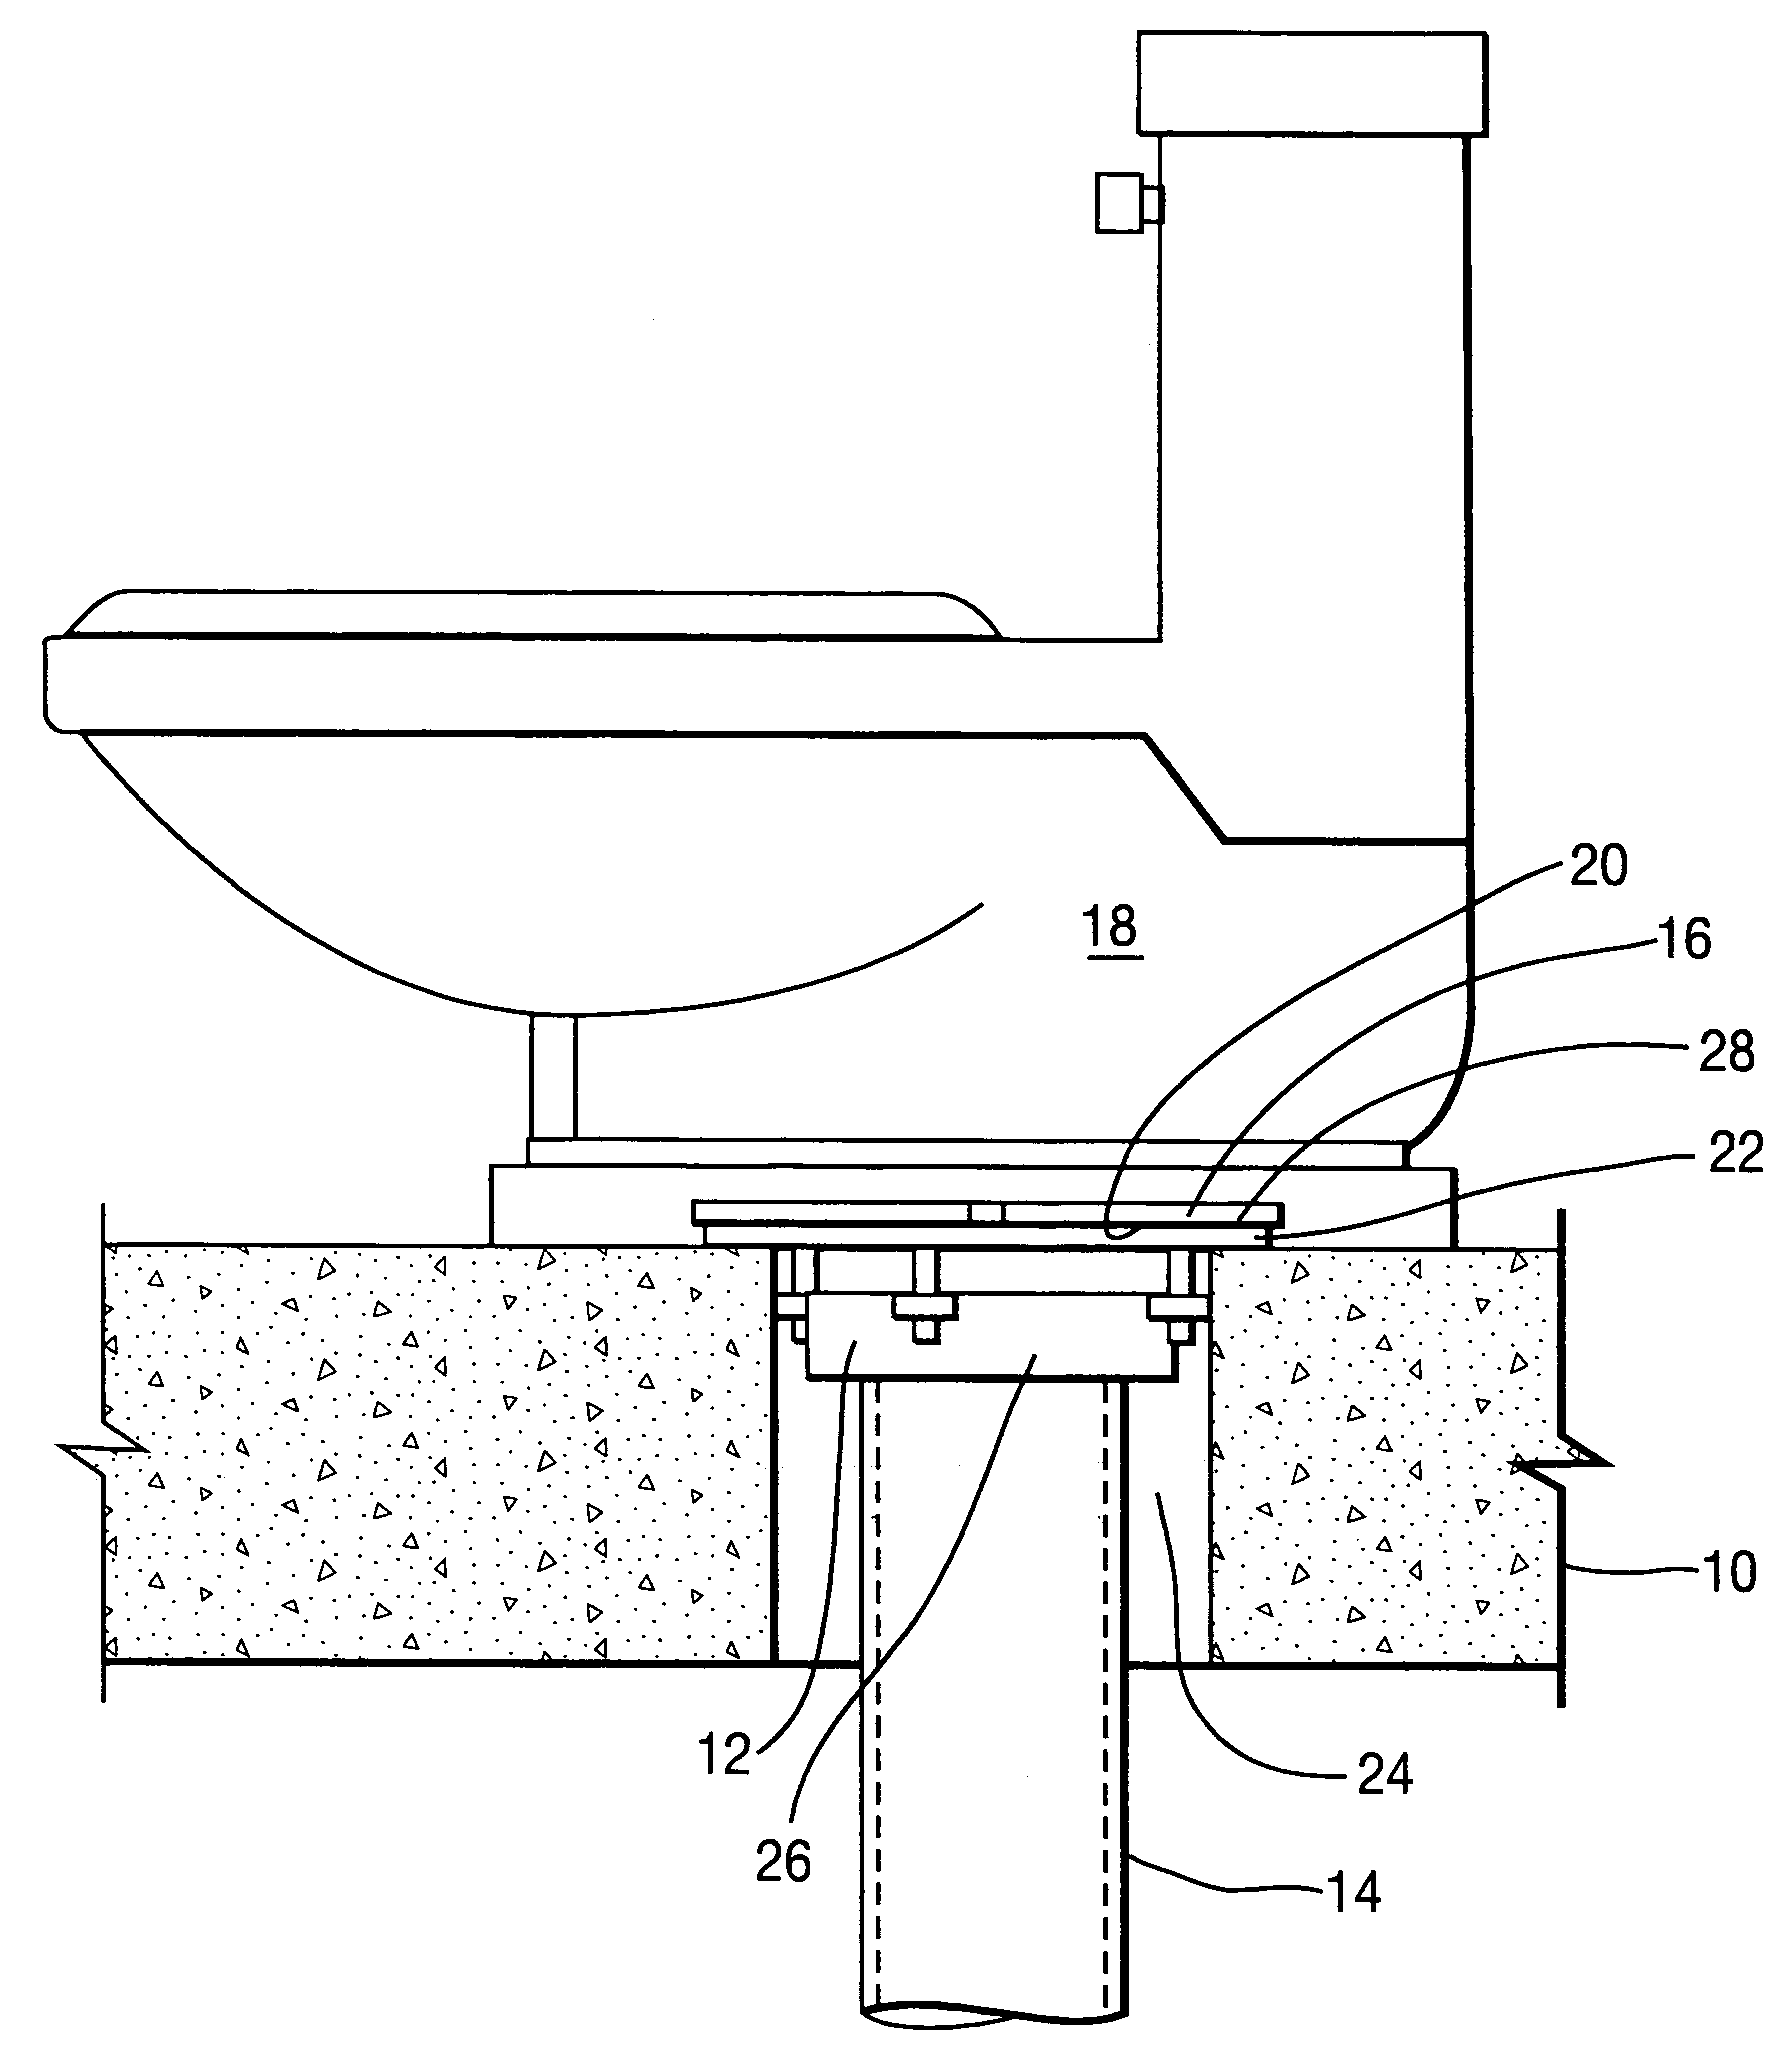 toilet flange diagram fender squier bass wiring patent us7694474 method and apparatus for firestopping